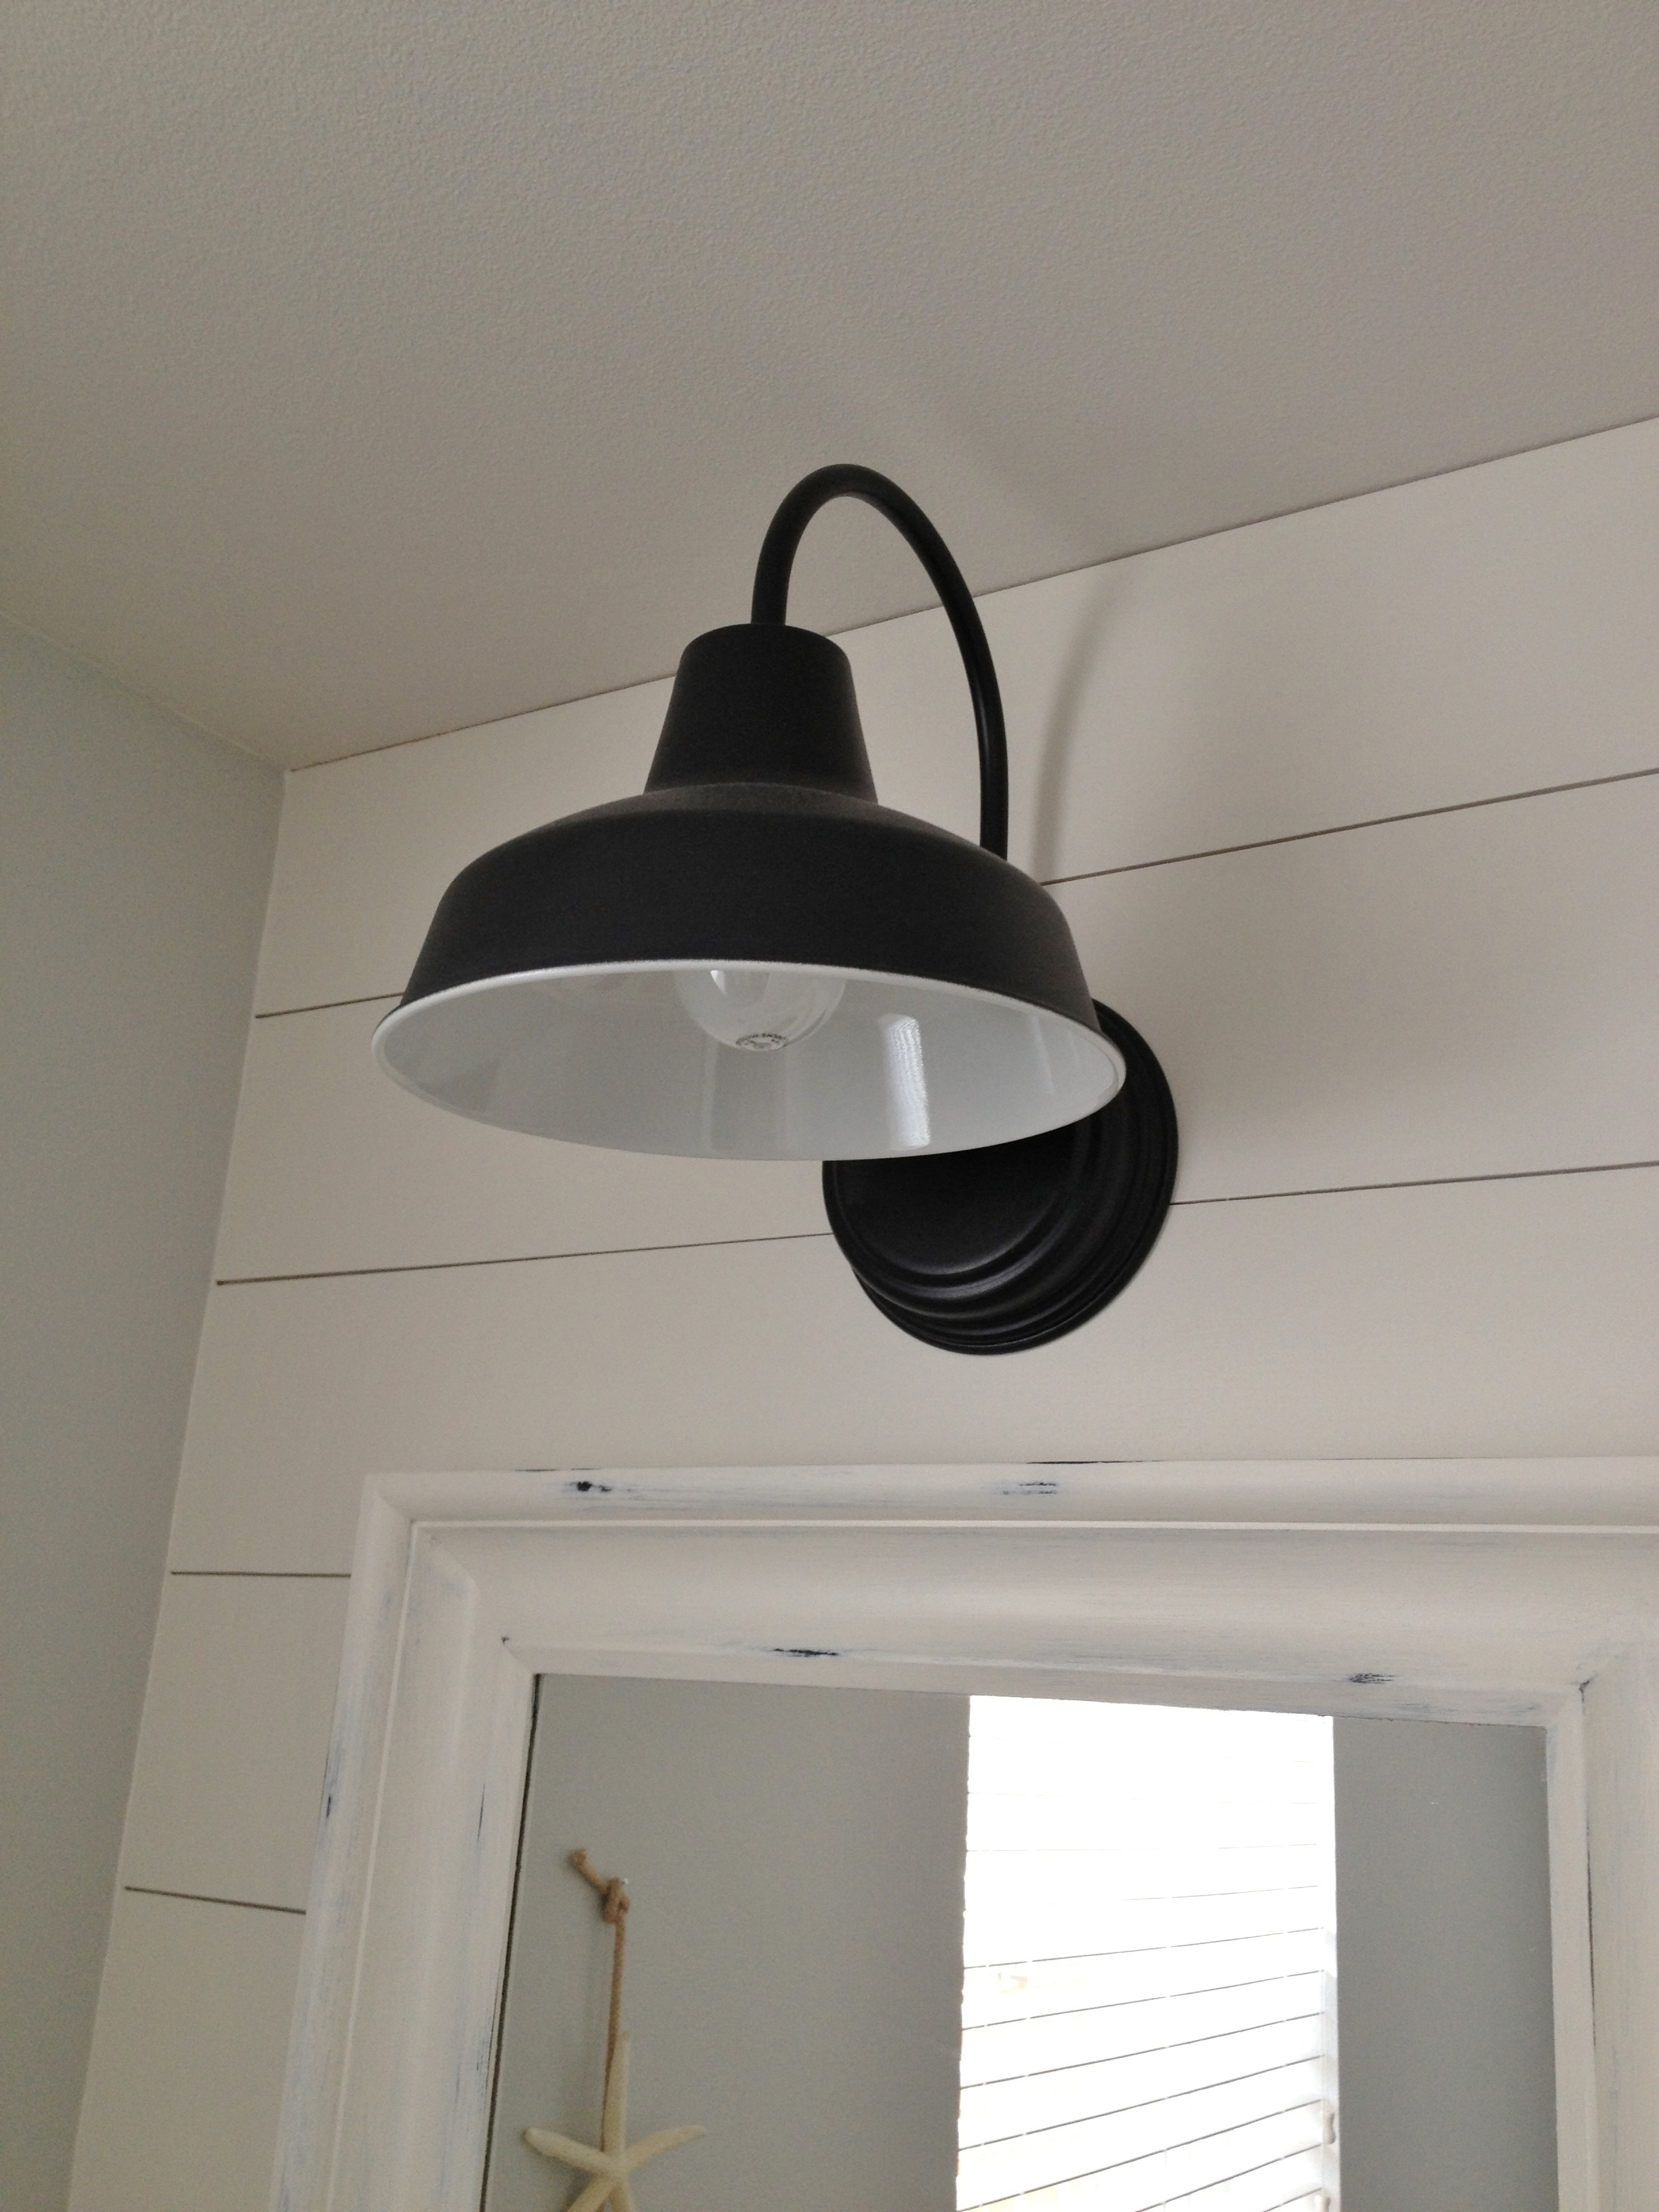 10 Things To Know About Barn Light Wall Sconce Warisan